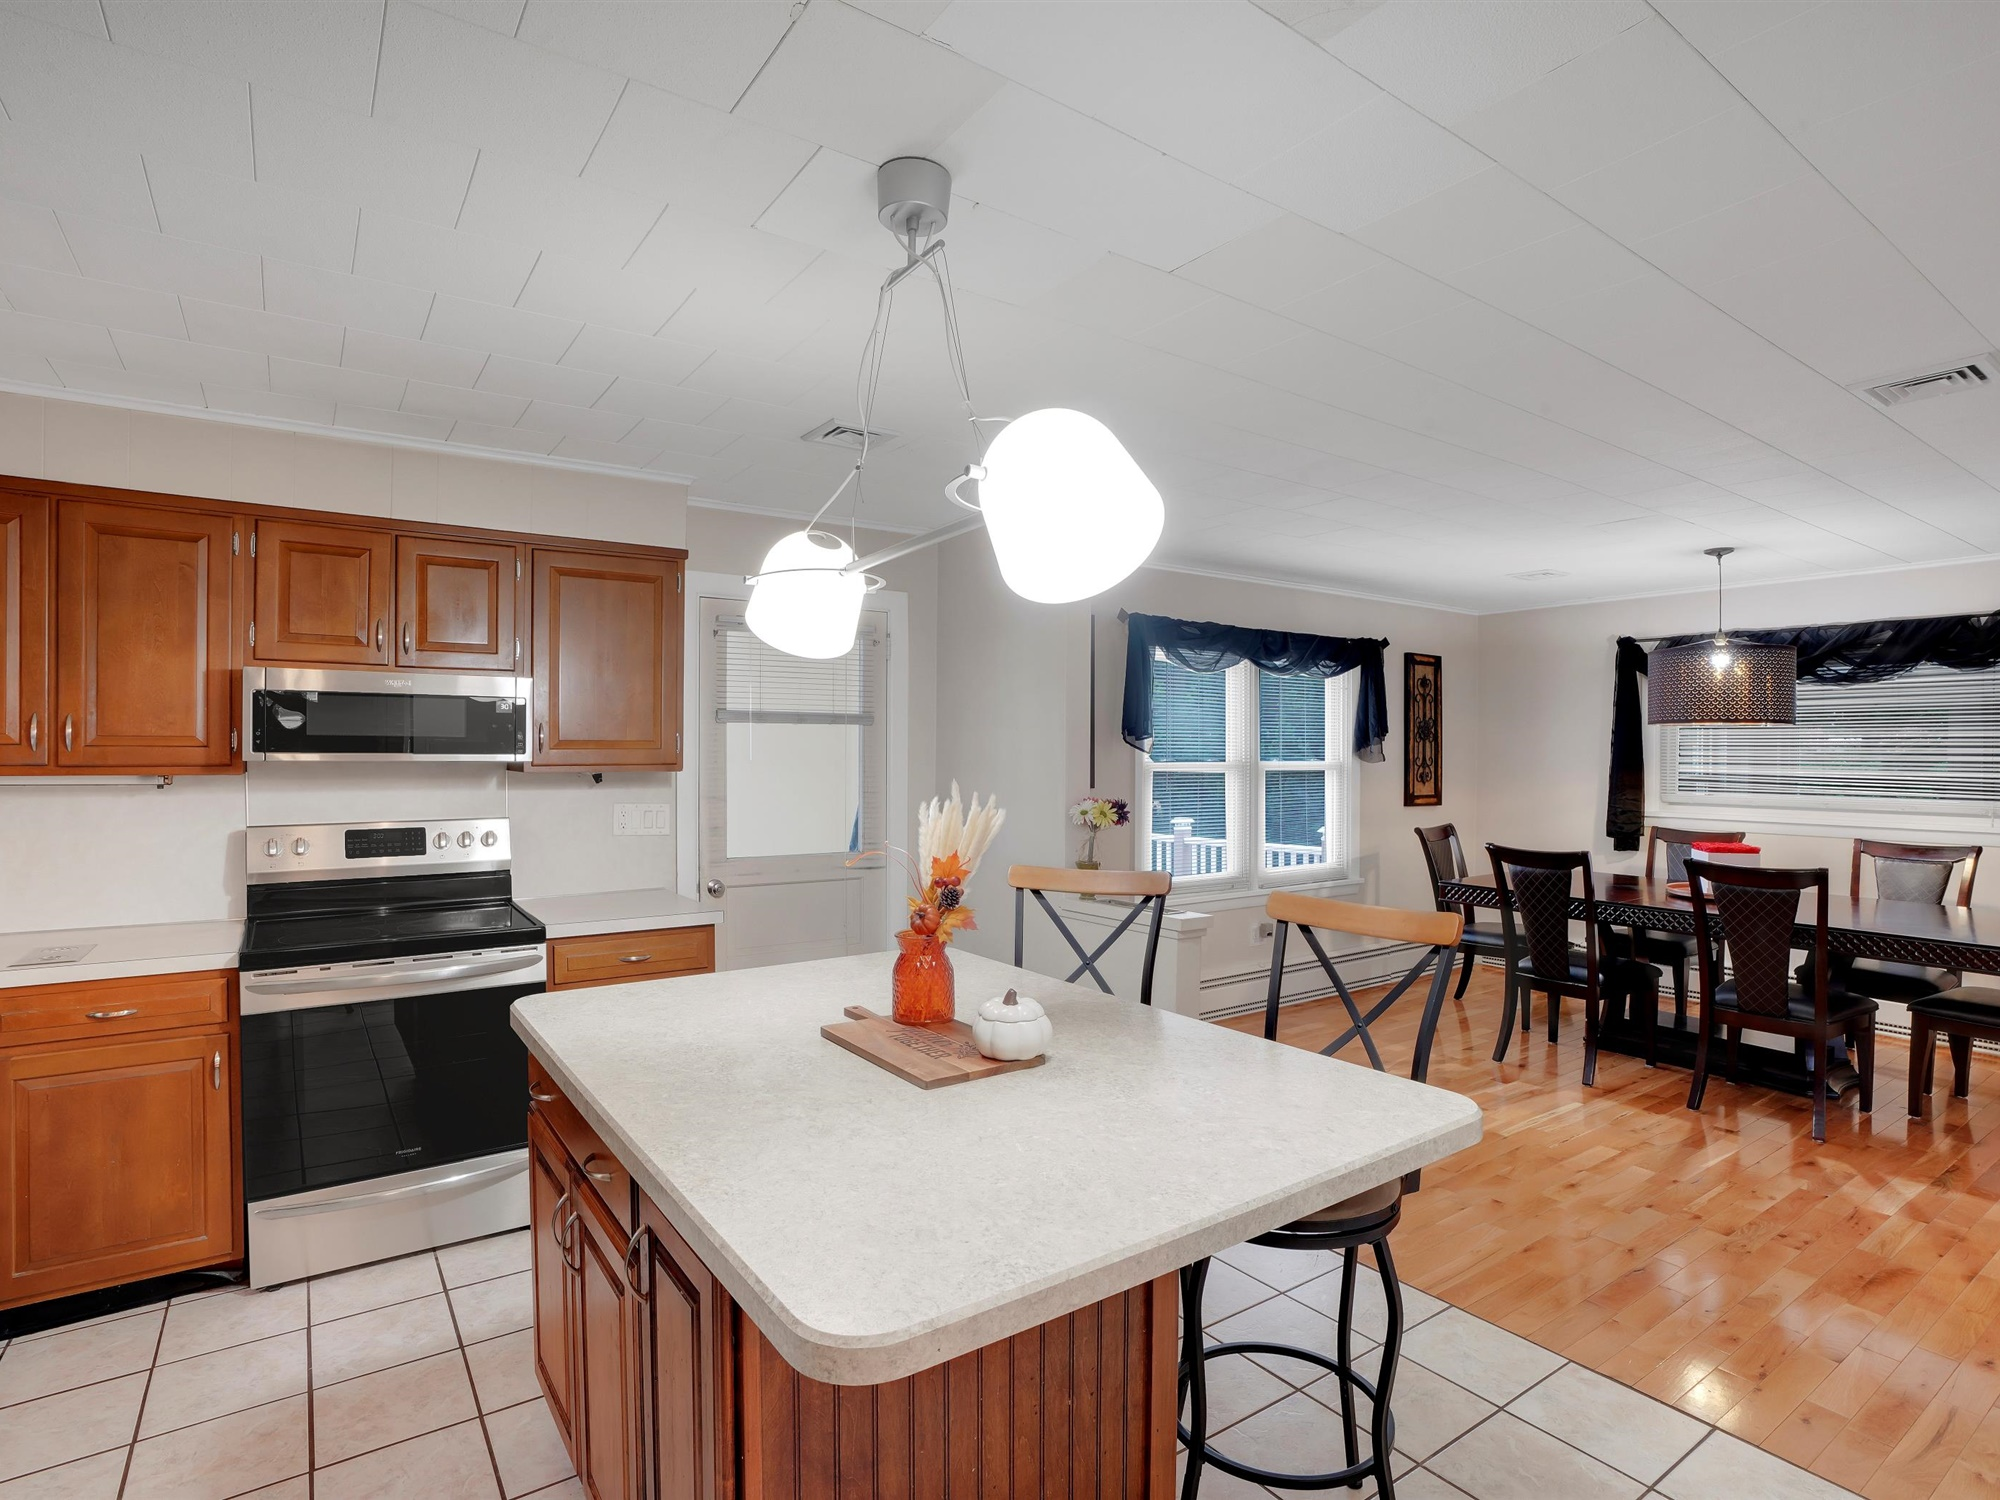 2022 Kline St - Charming Single Family home with kitchen and dining area